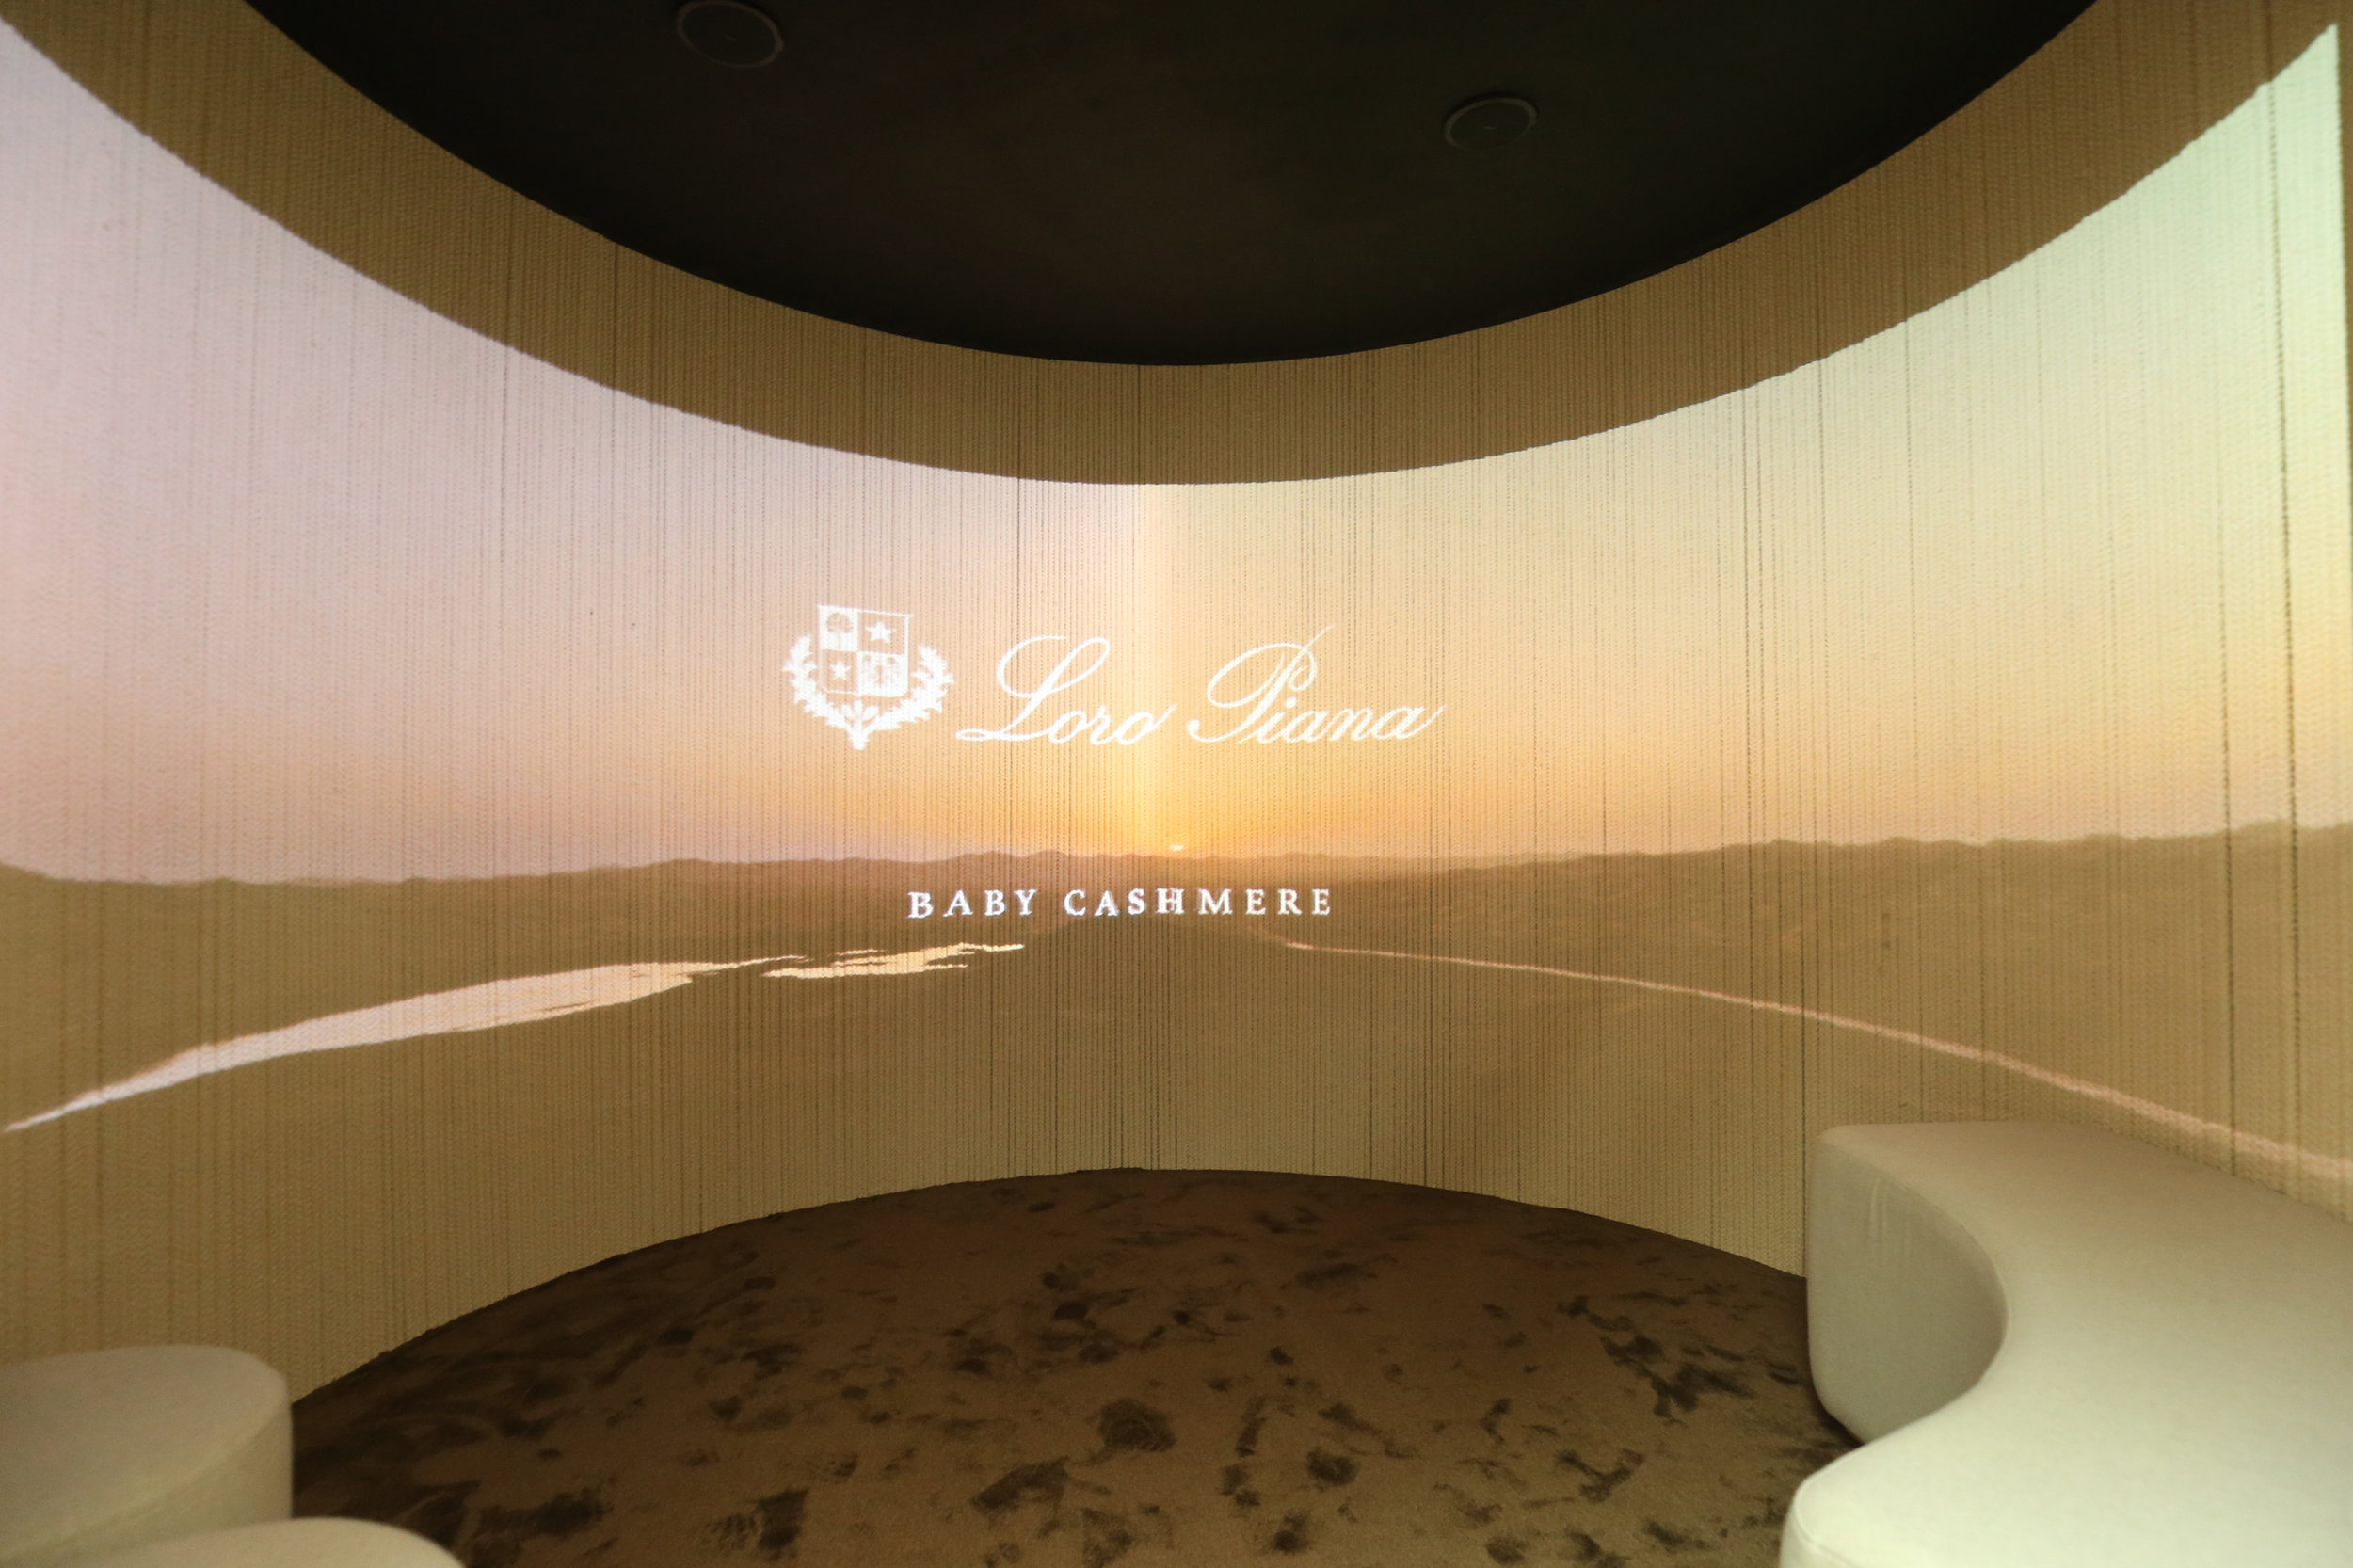 Baby Cashmere pop up - Projection mapped cinema experience